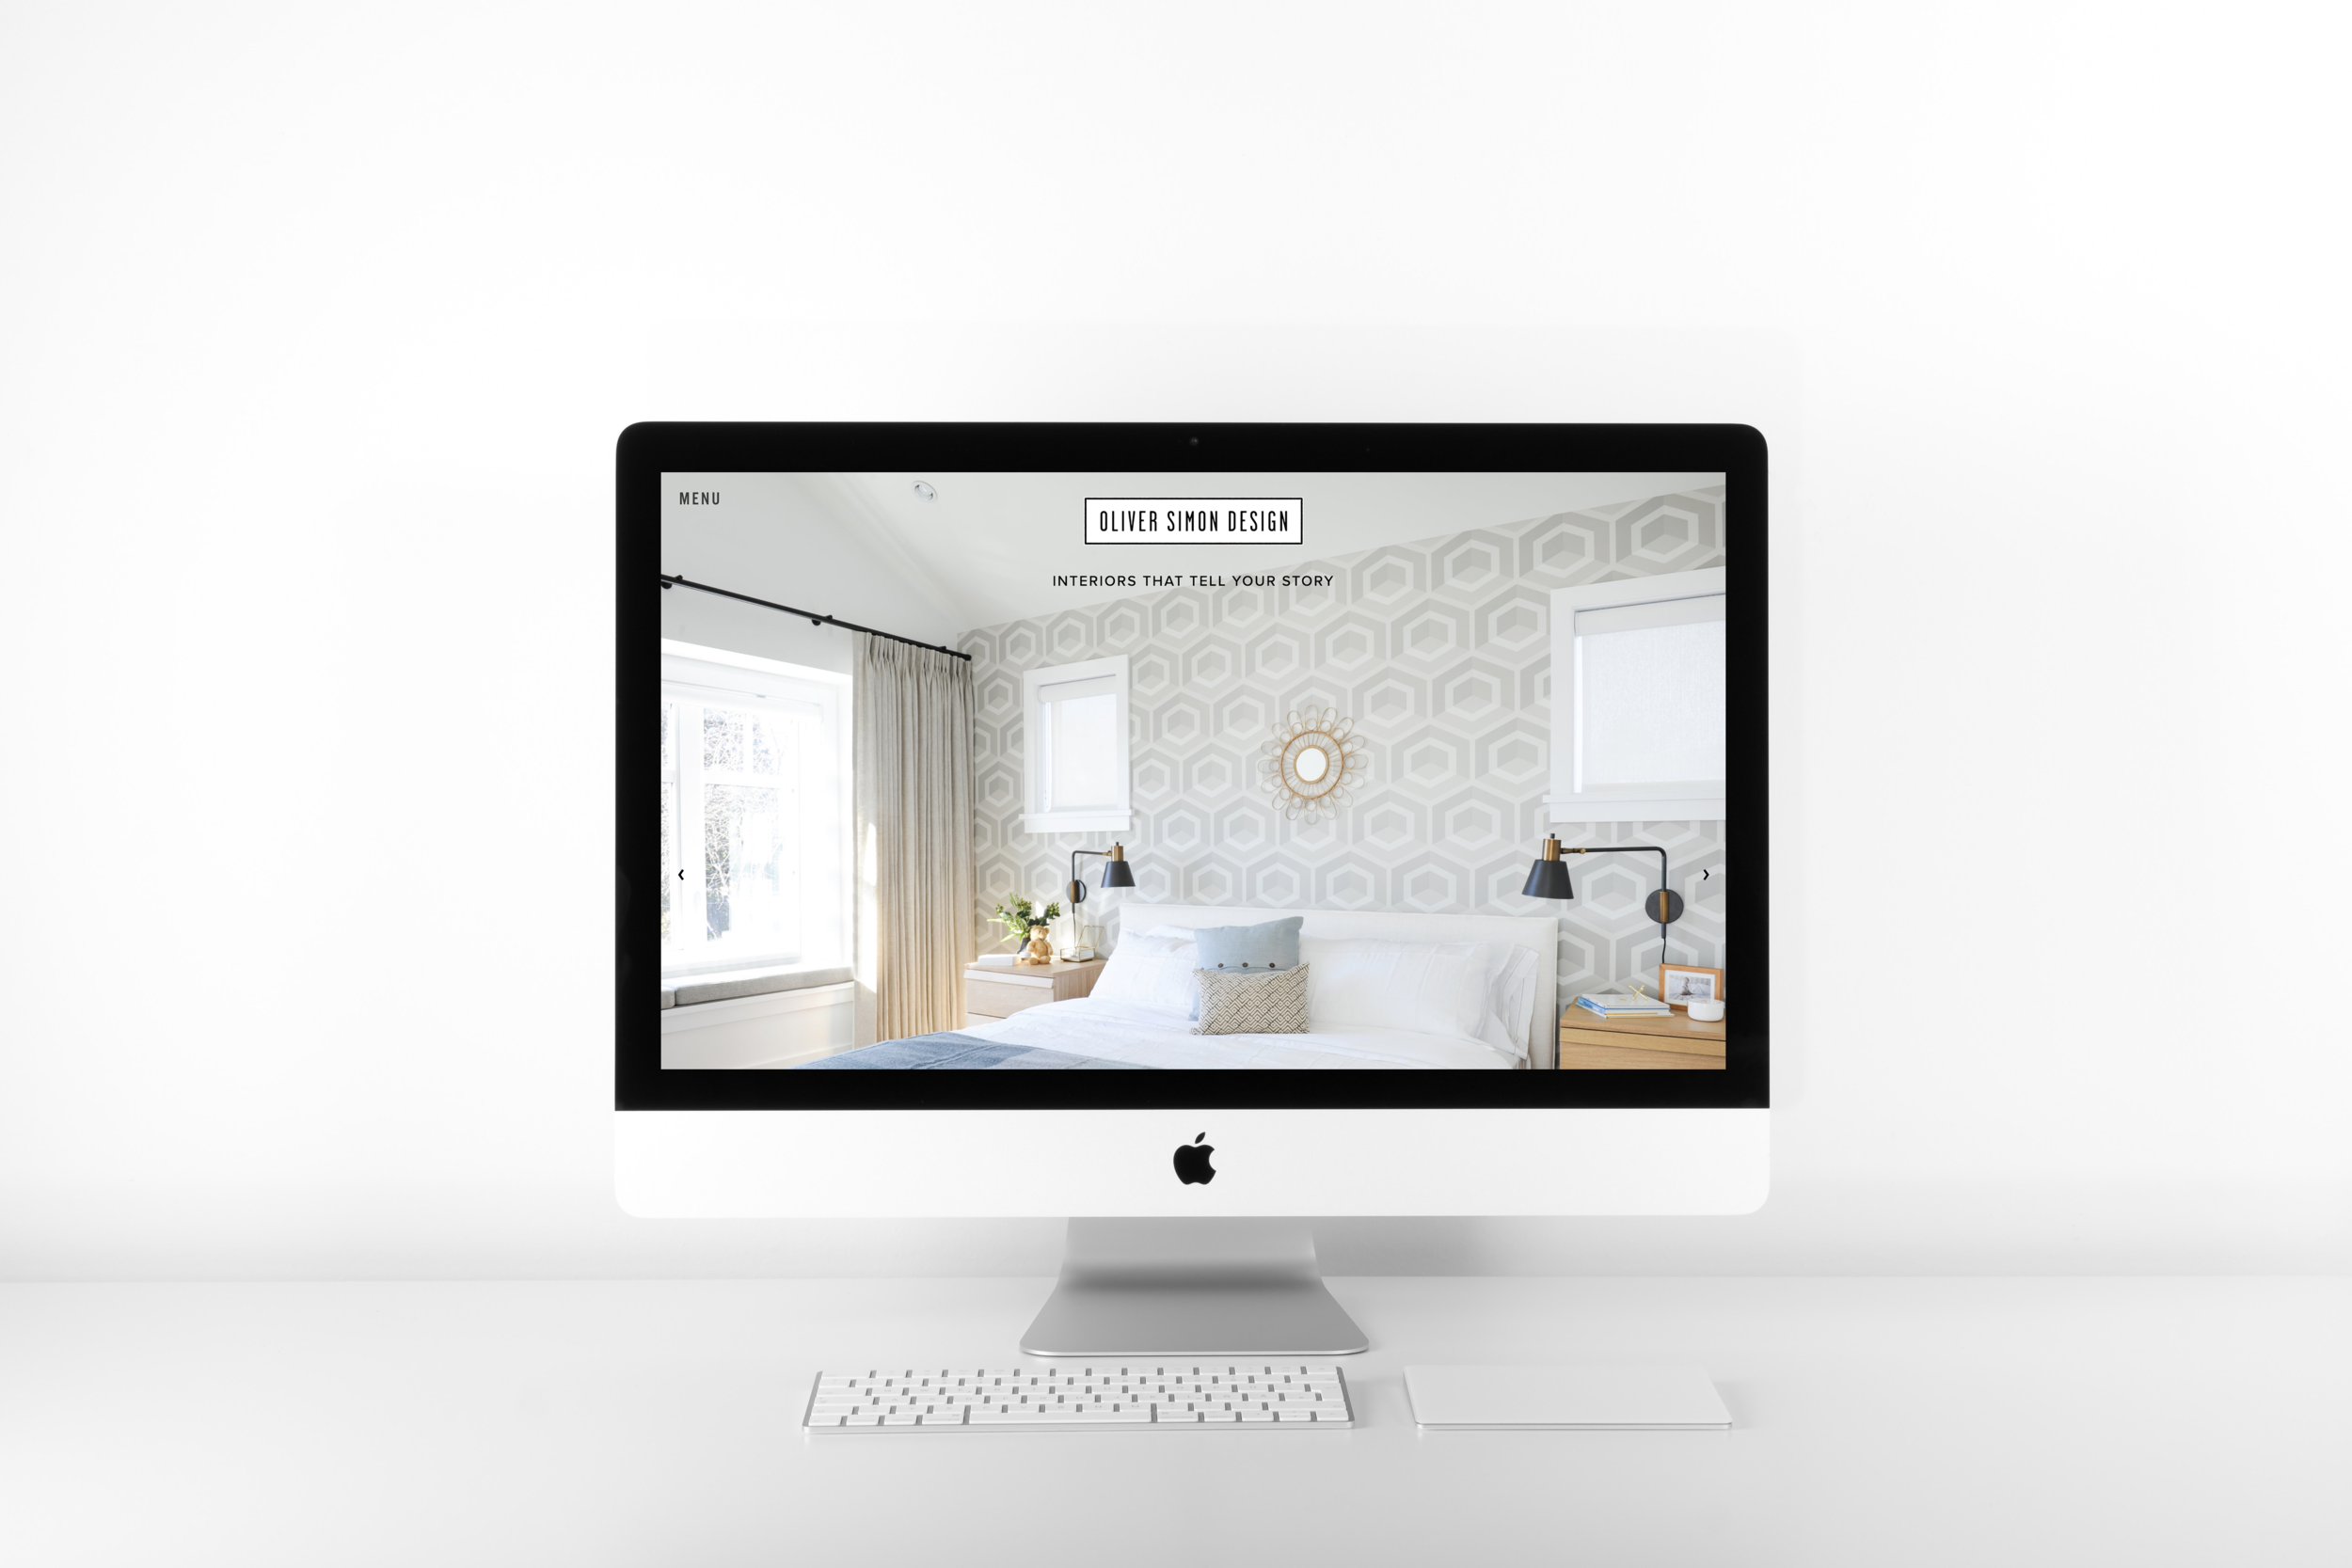 Oliver Simon Design's website homepage is shown on an iMac with plants and other office paraphernalia around it.